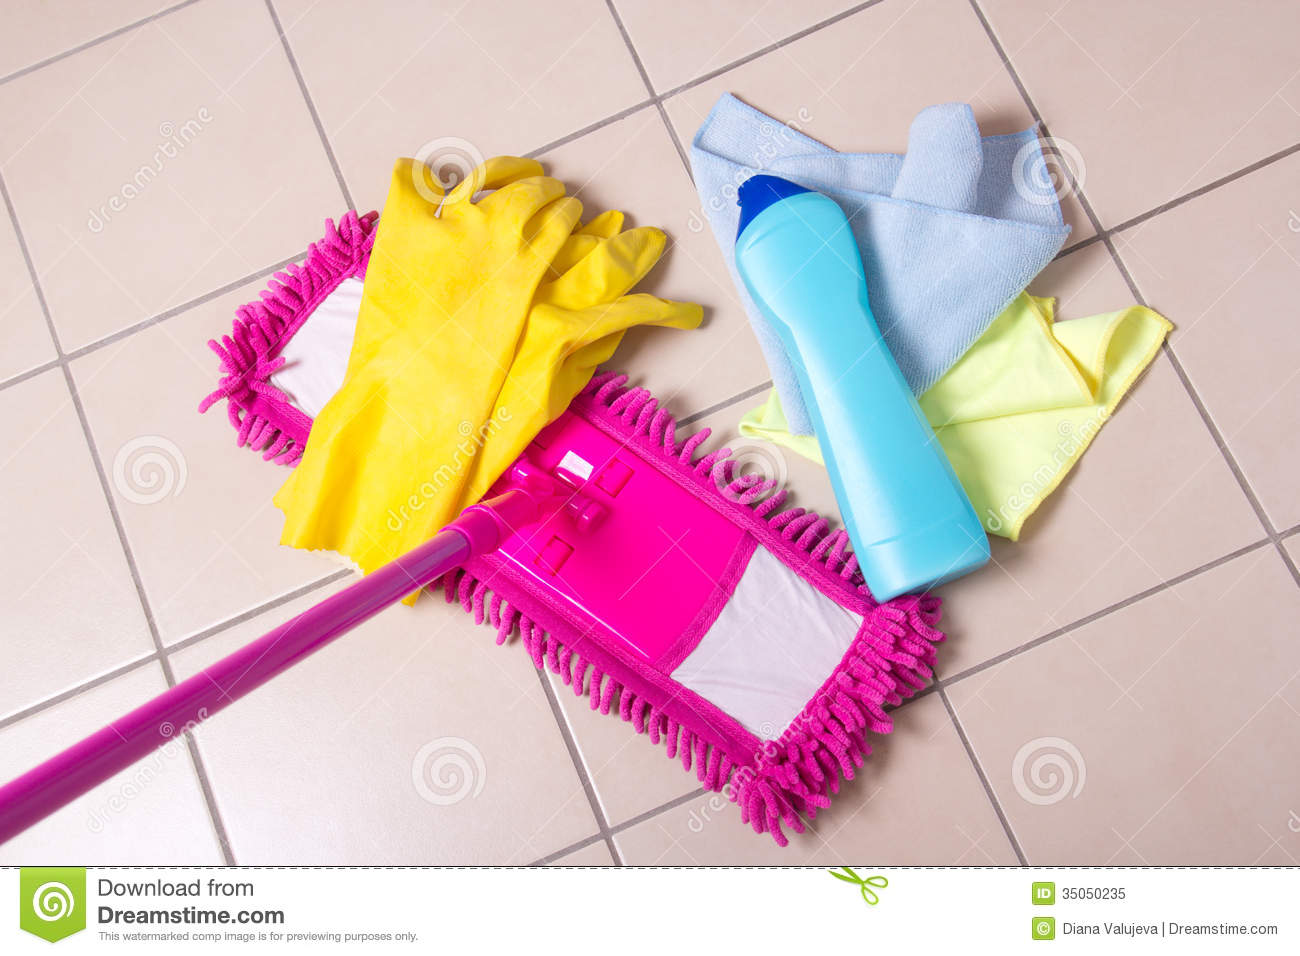 Cleaning Products On The Tile Floor Stock Image Image Of Mopping - Bathroom cleaning materials